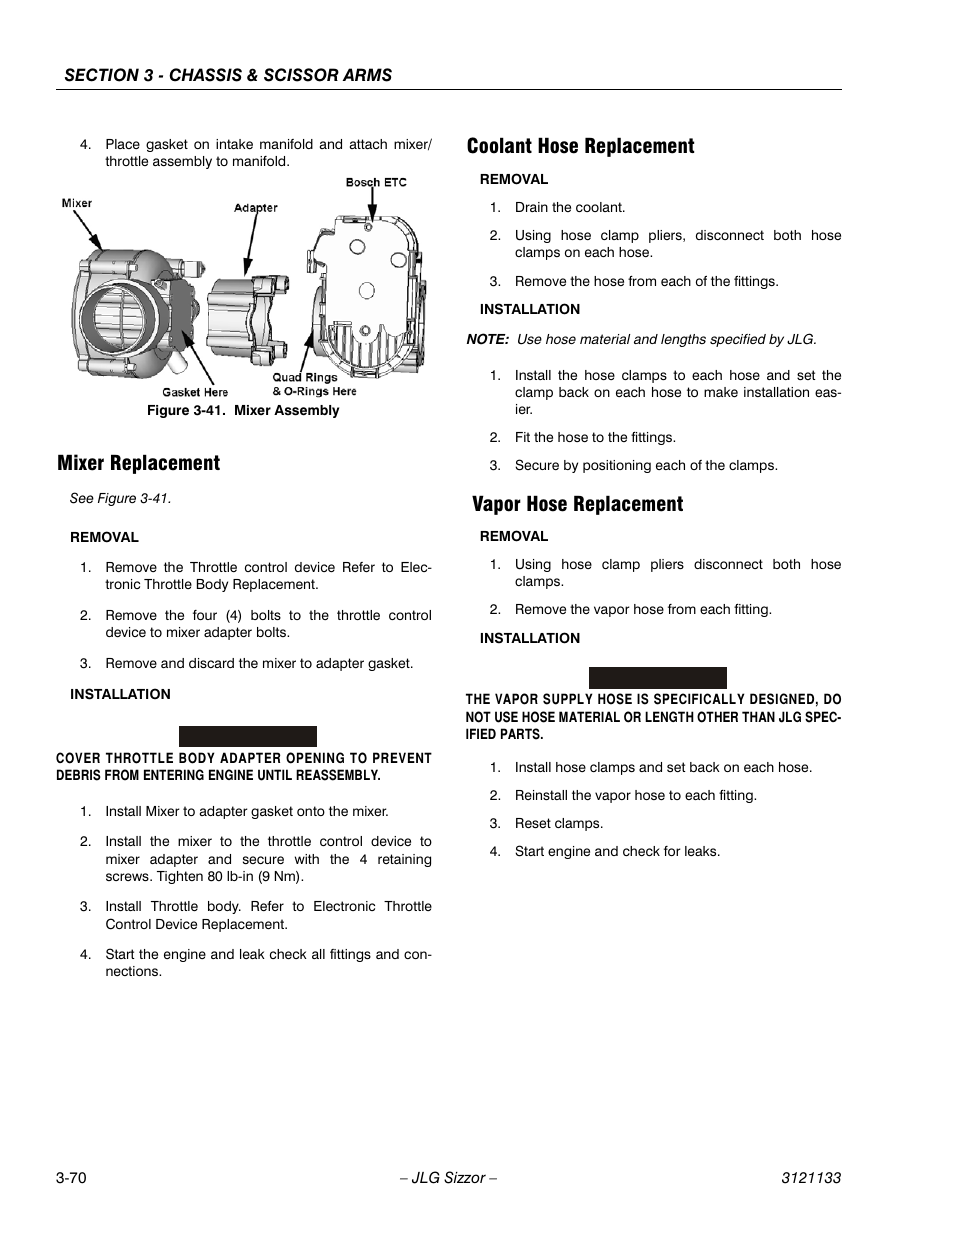 Generac 4000xl engine owners manual ebook array sokkia set 3100 manual ebook rh sokkia set 3100 manual ebook thepivotpoint us fandeluxe Choice Image